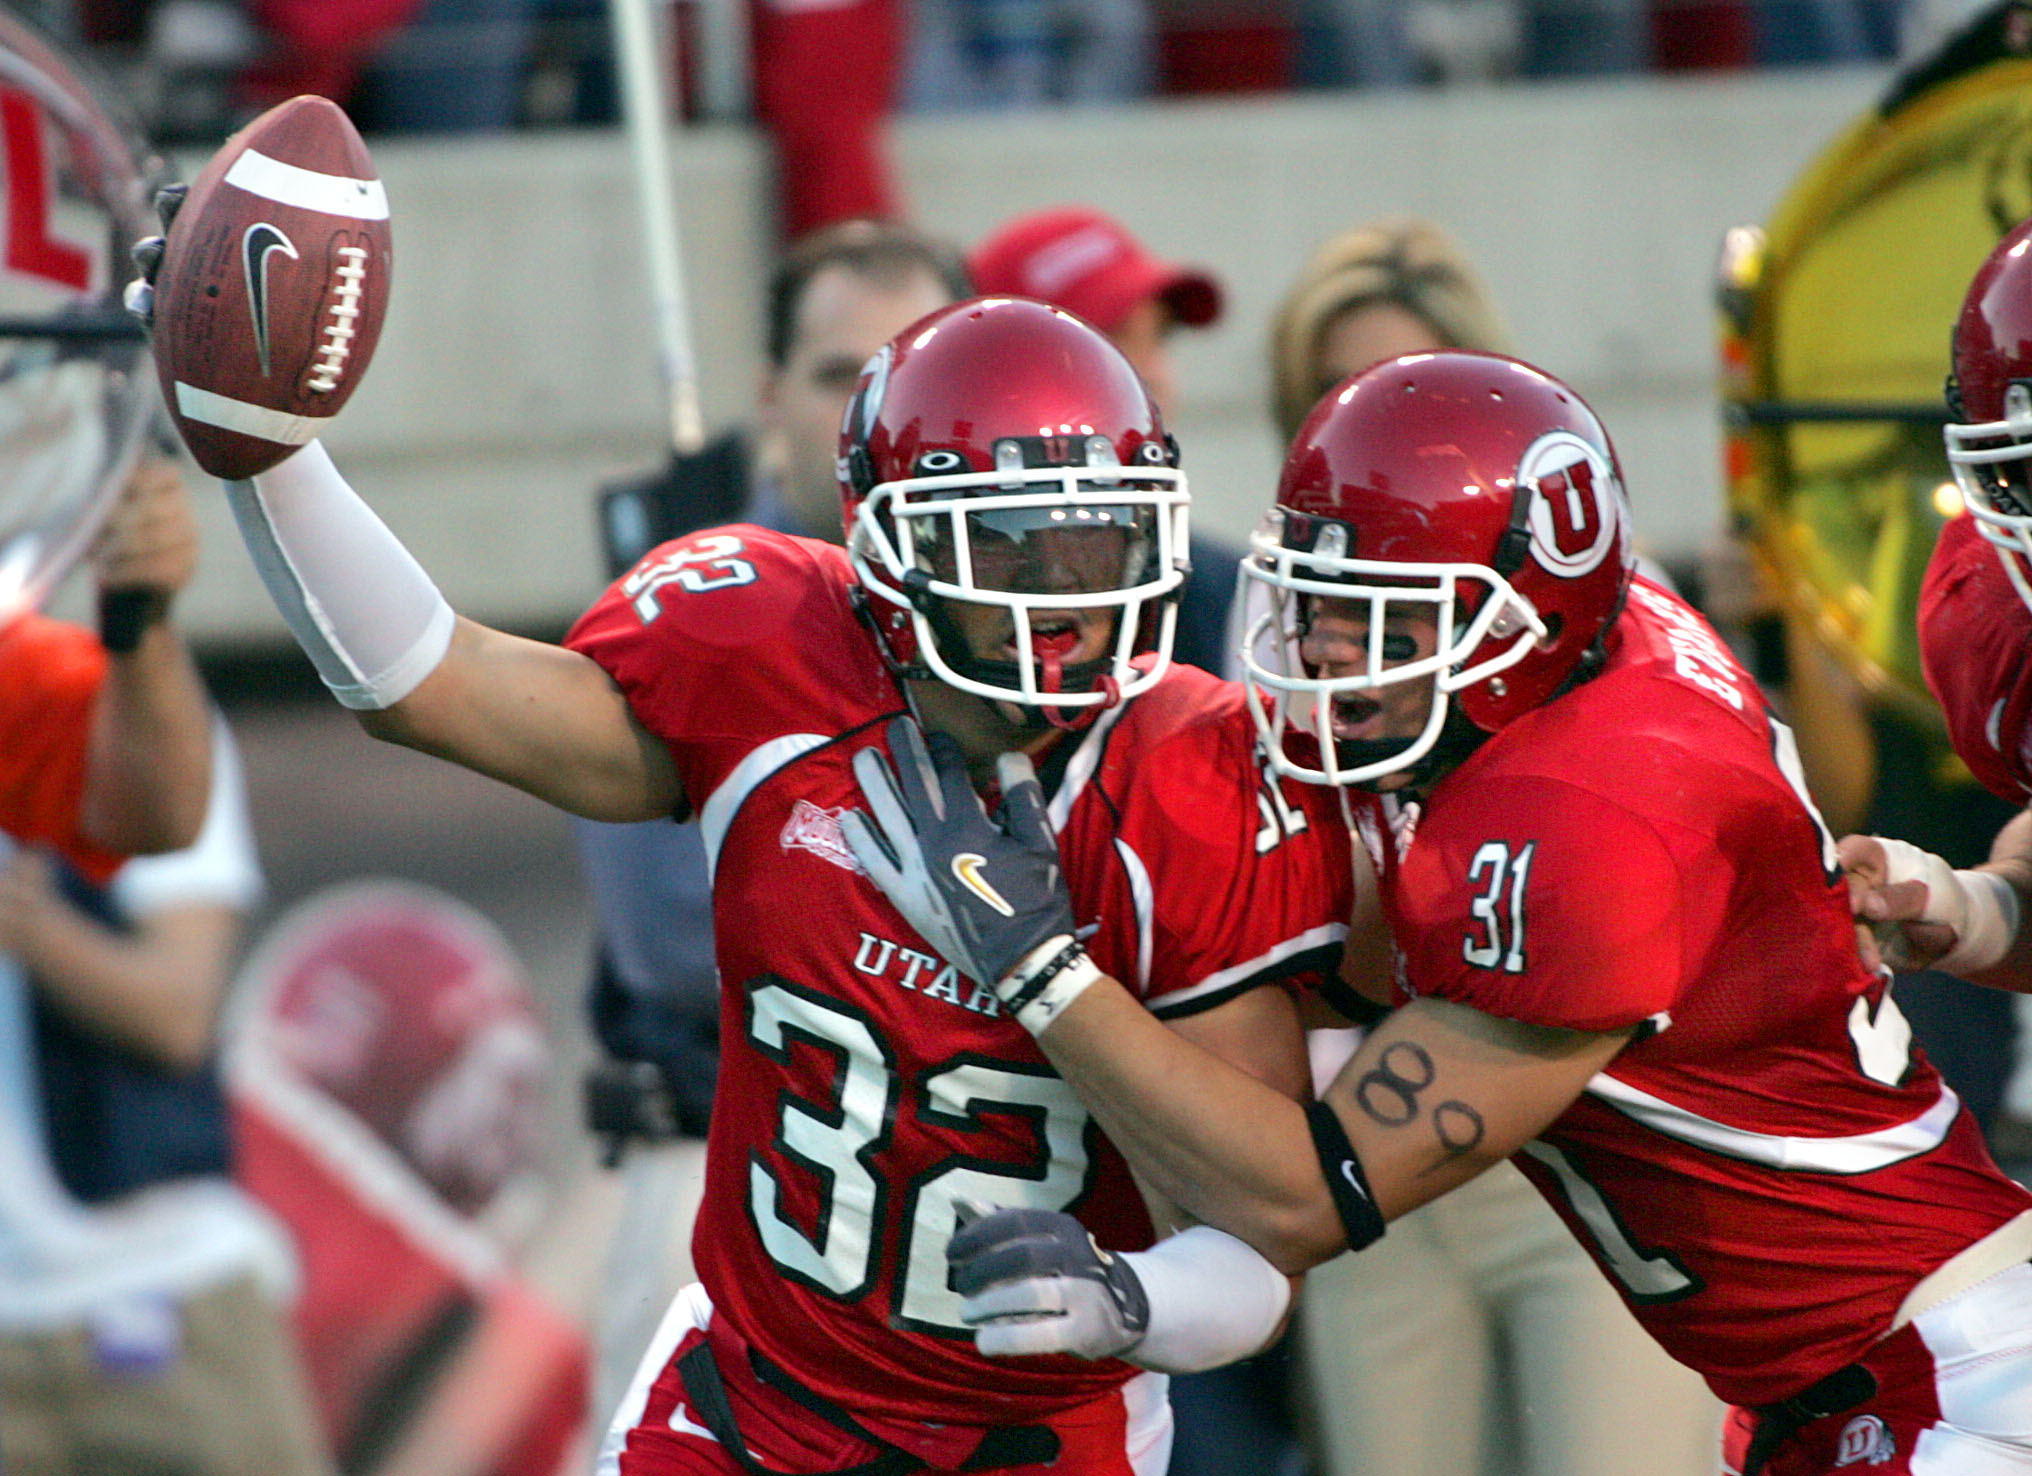 Utah's Eric Weddle left, and Casey Evans celebrate after Weddle recovered a fumble againsit Air Force Academy Sept. 22, 2005.